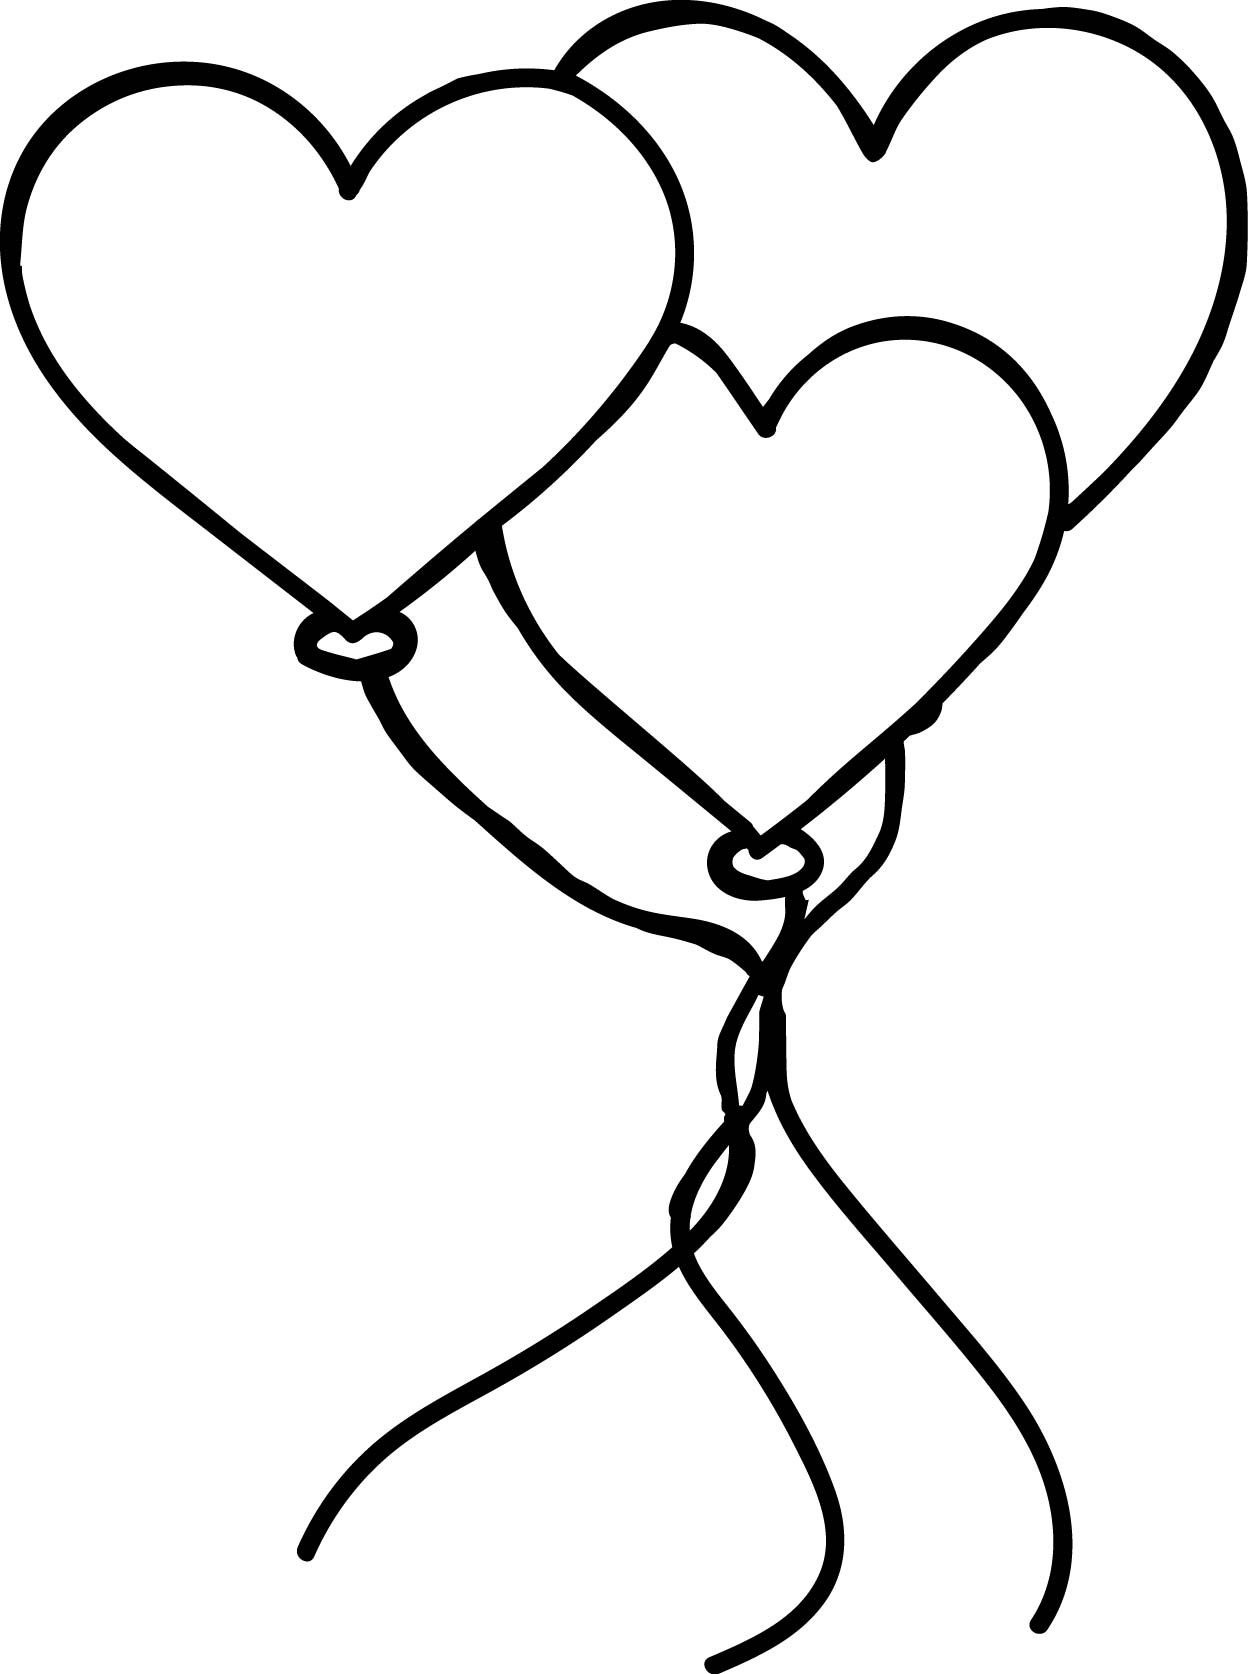 Valentine's Day Balloons Coloring Page